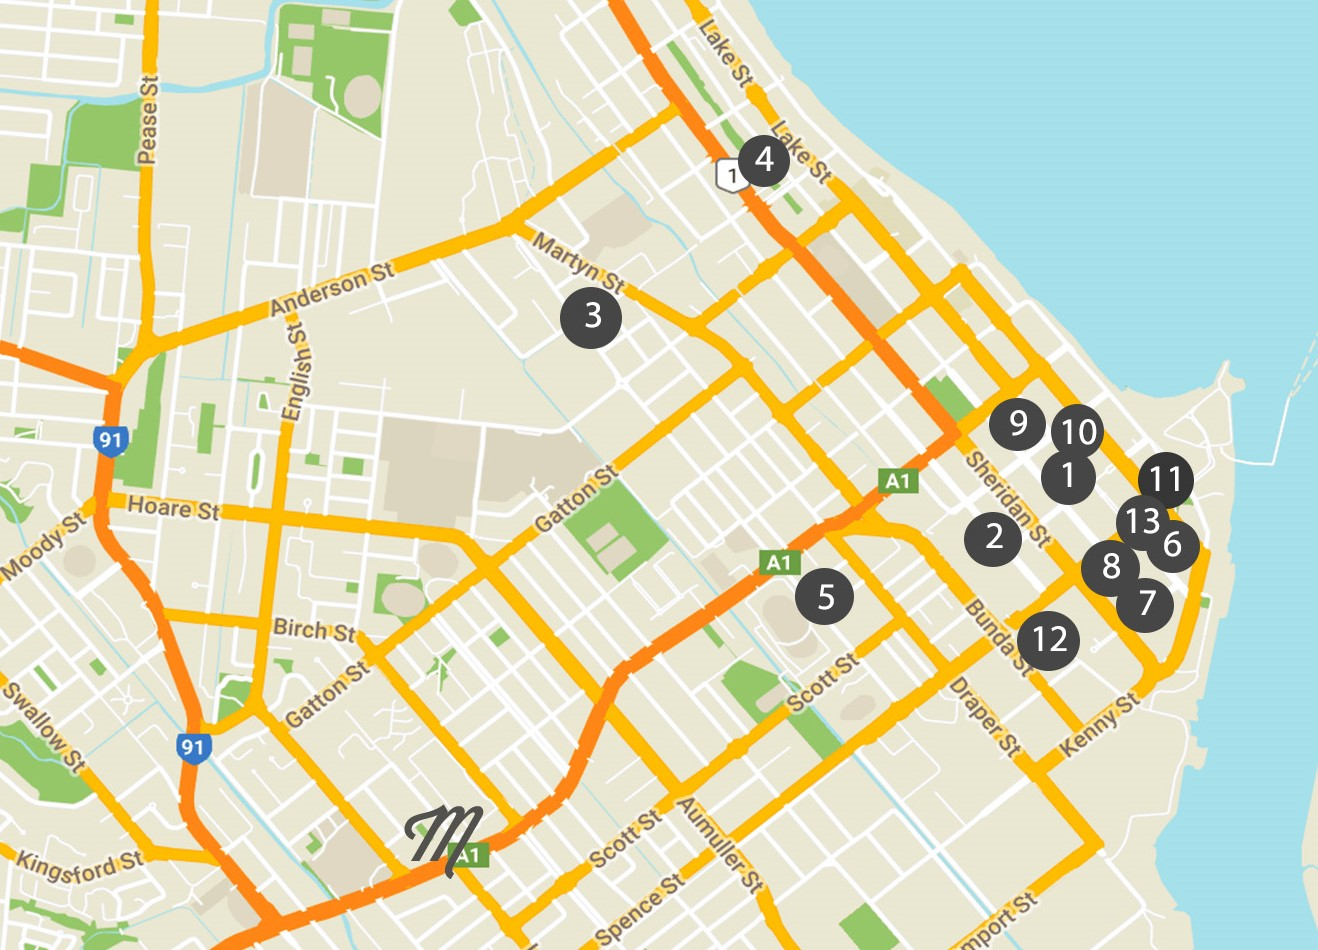 A visual of their positioning. Within the City Centre, these are in walking distance. Happy Exploring!